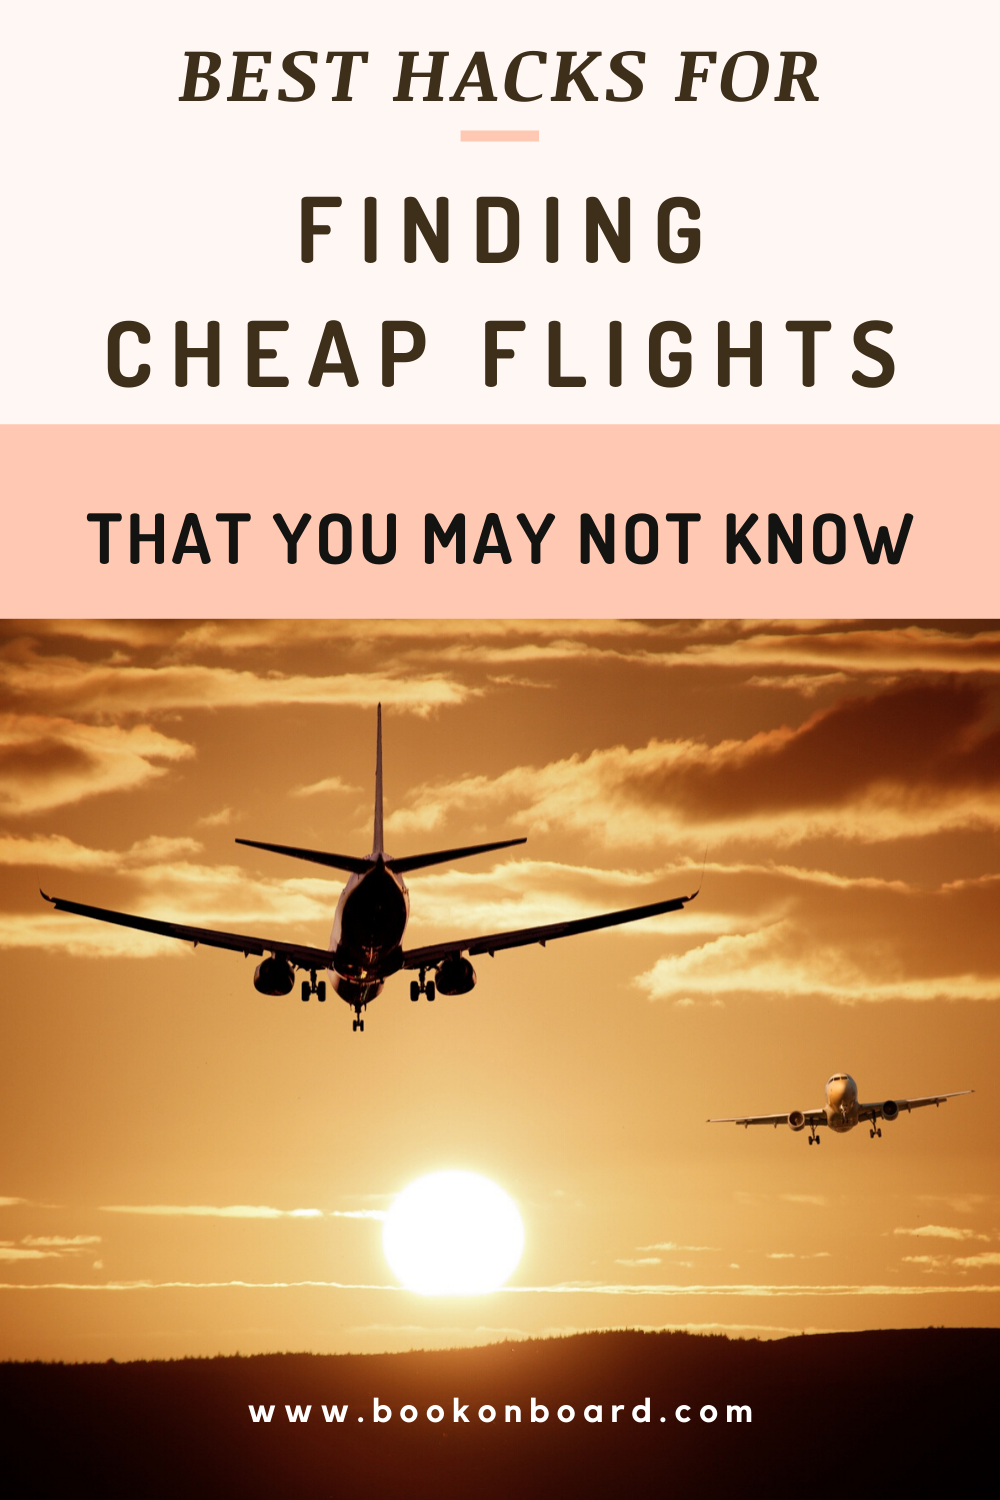 How to find cheap flights for budget travel to book budget flight from anywhere. Here you will find 10 flight booking hacks which will make it easy to book cheap flight and best flight booking websites are also mentioned #budgetflightbooking #cheapflights #bookcheapflights #traveltips #travelhacks #cheapflighthacks